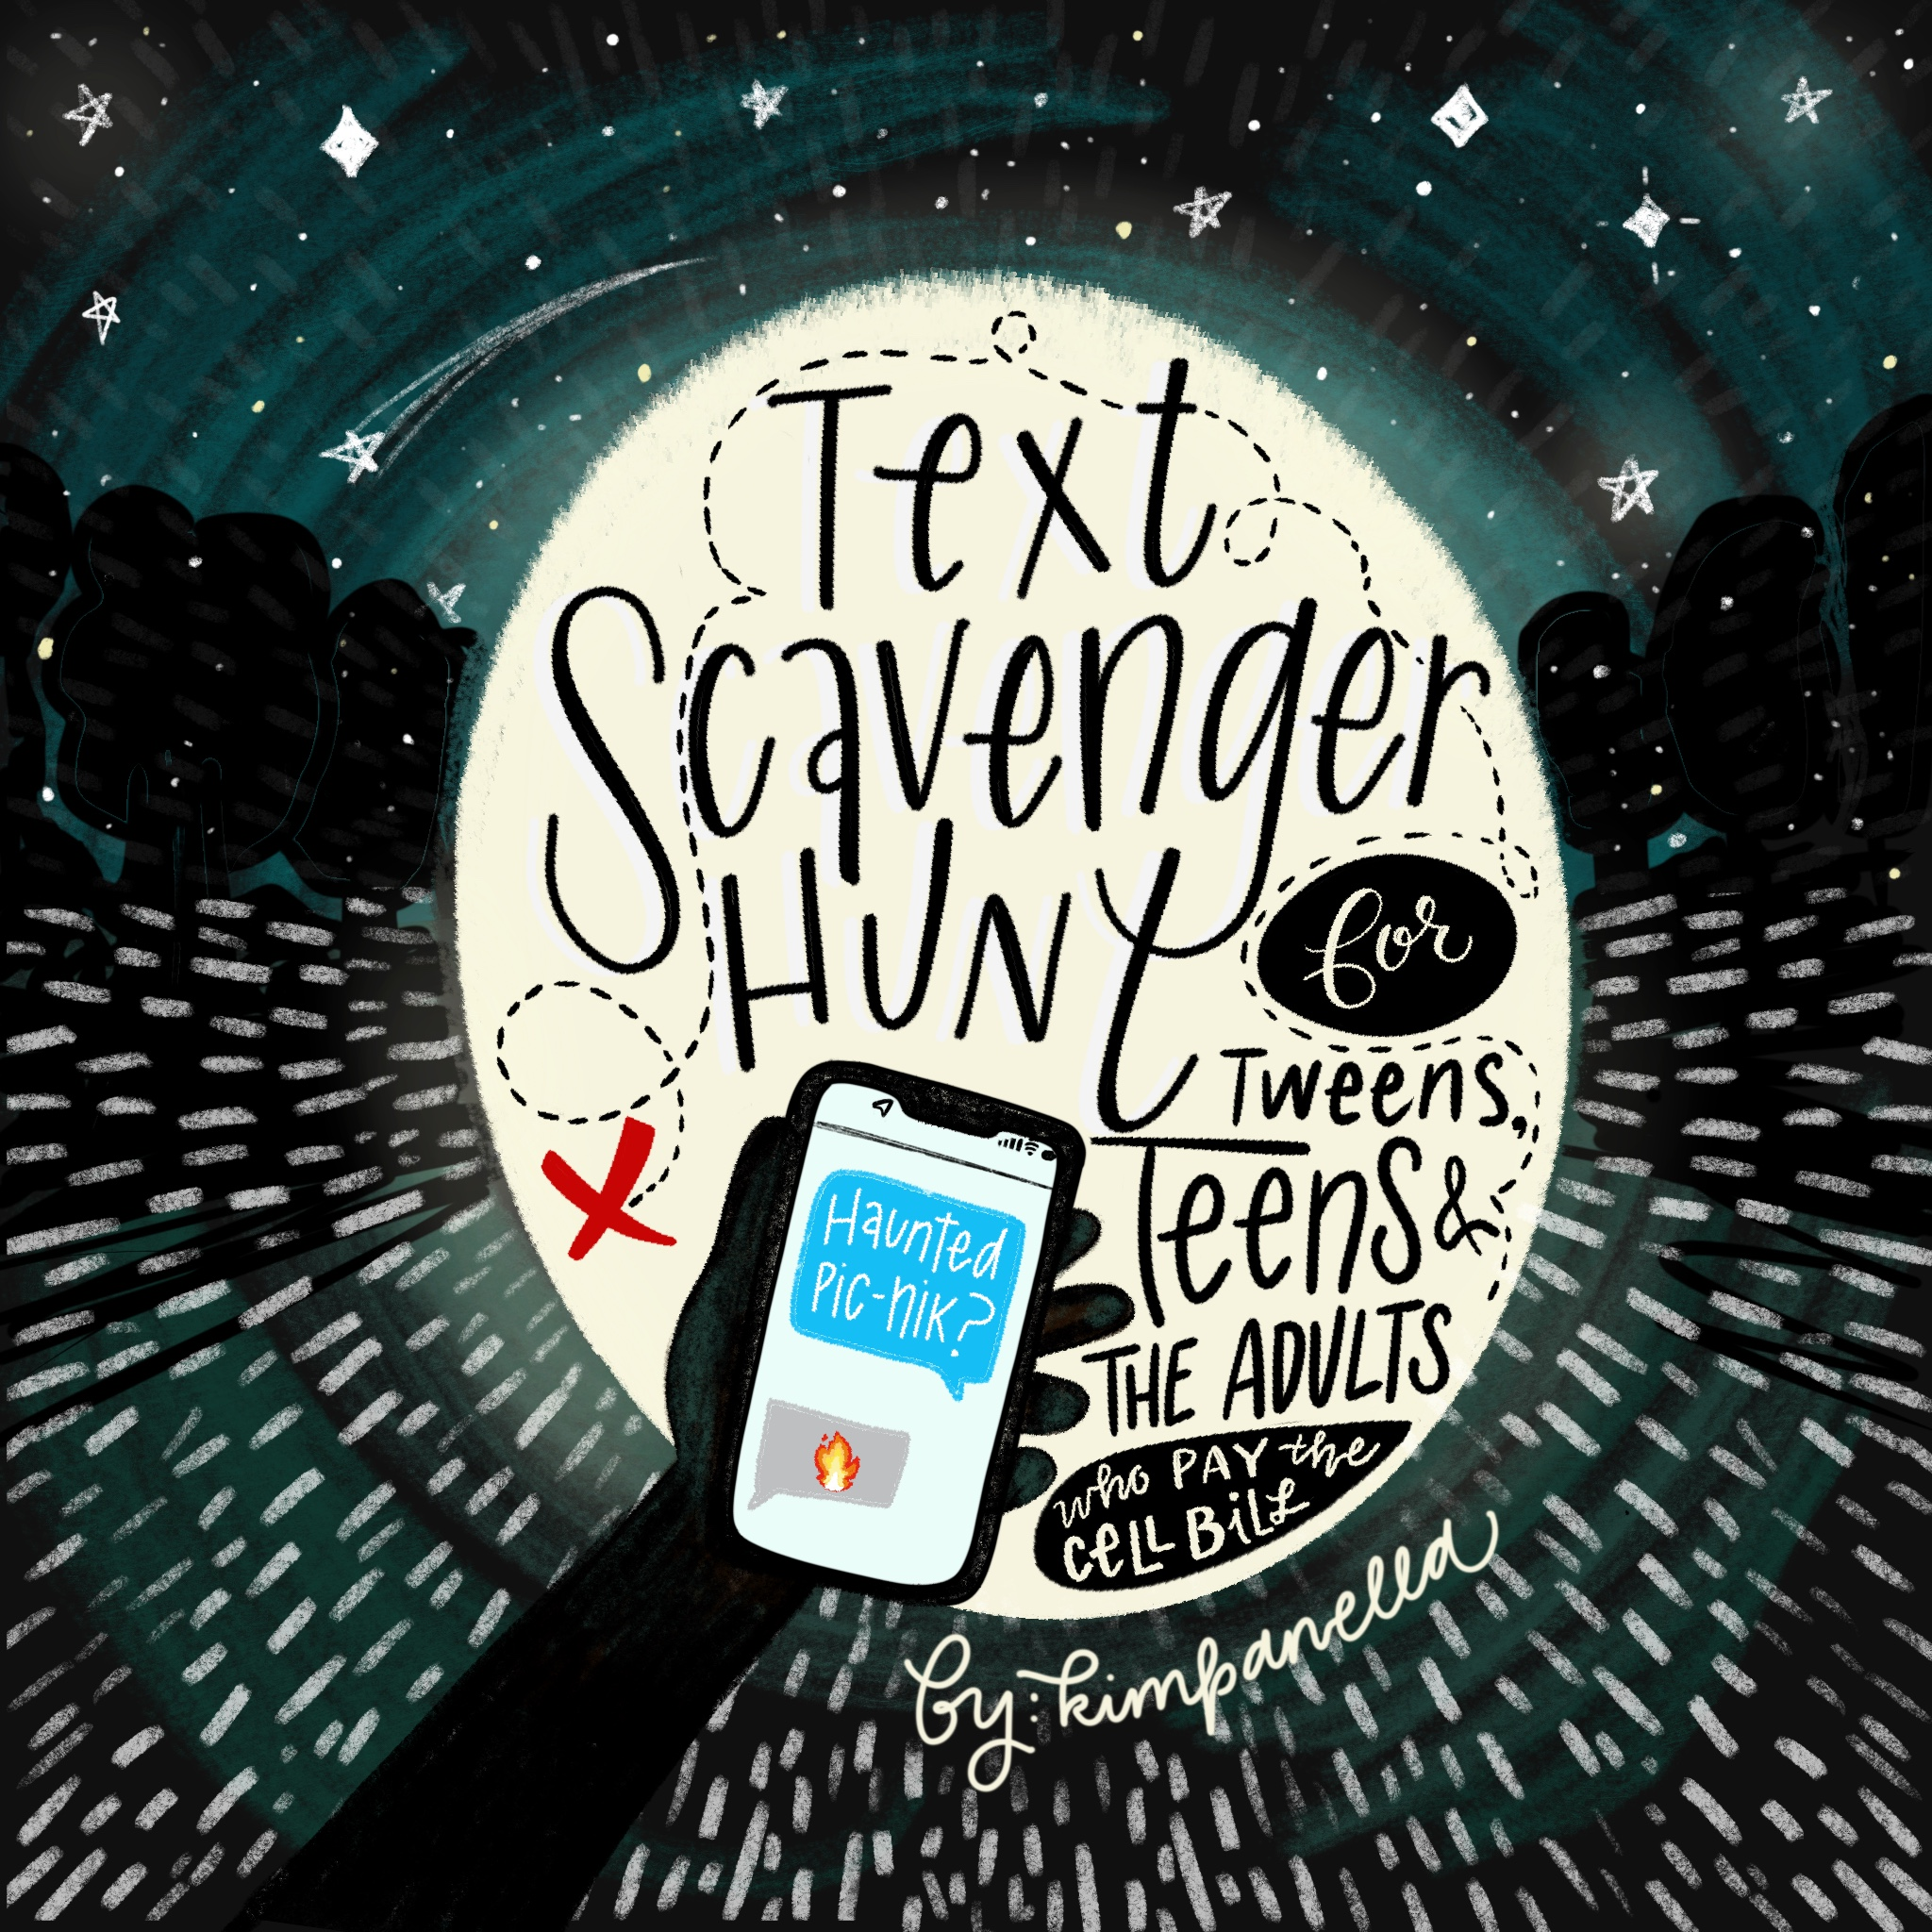 text scavenger hunt, teen party game, tween party game, adult party game, hide and seek game, cell phone text game